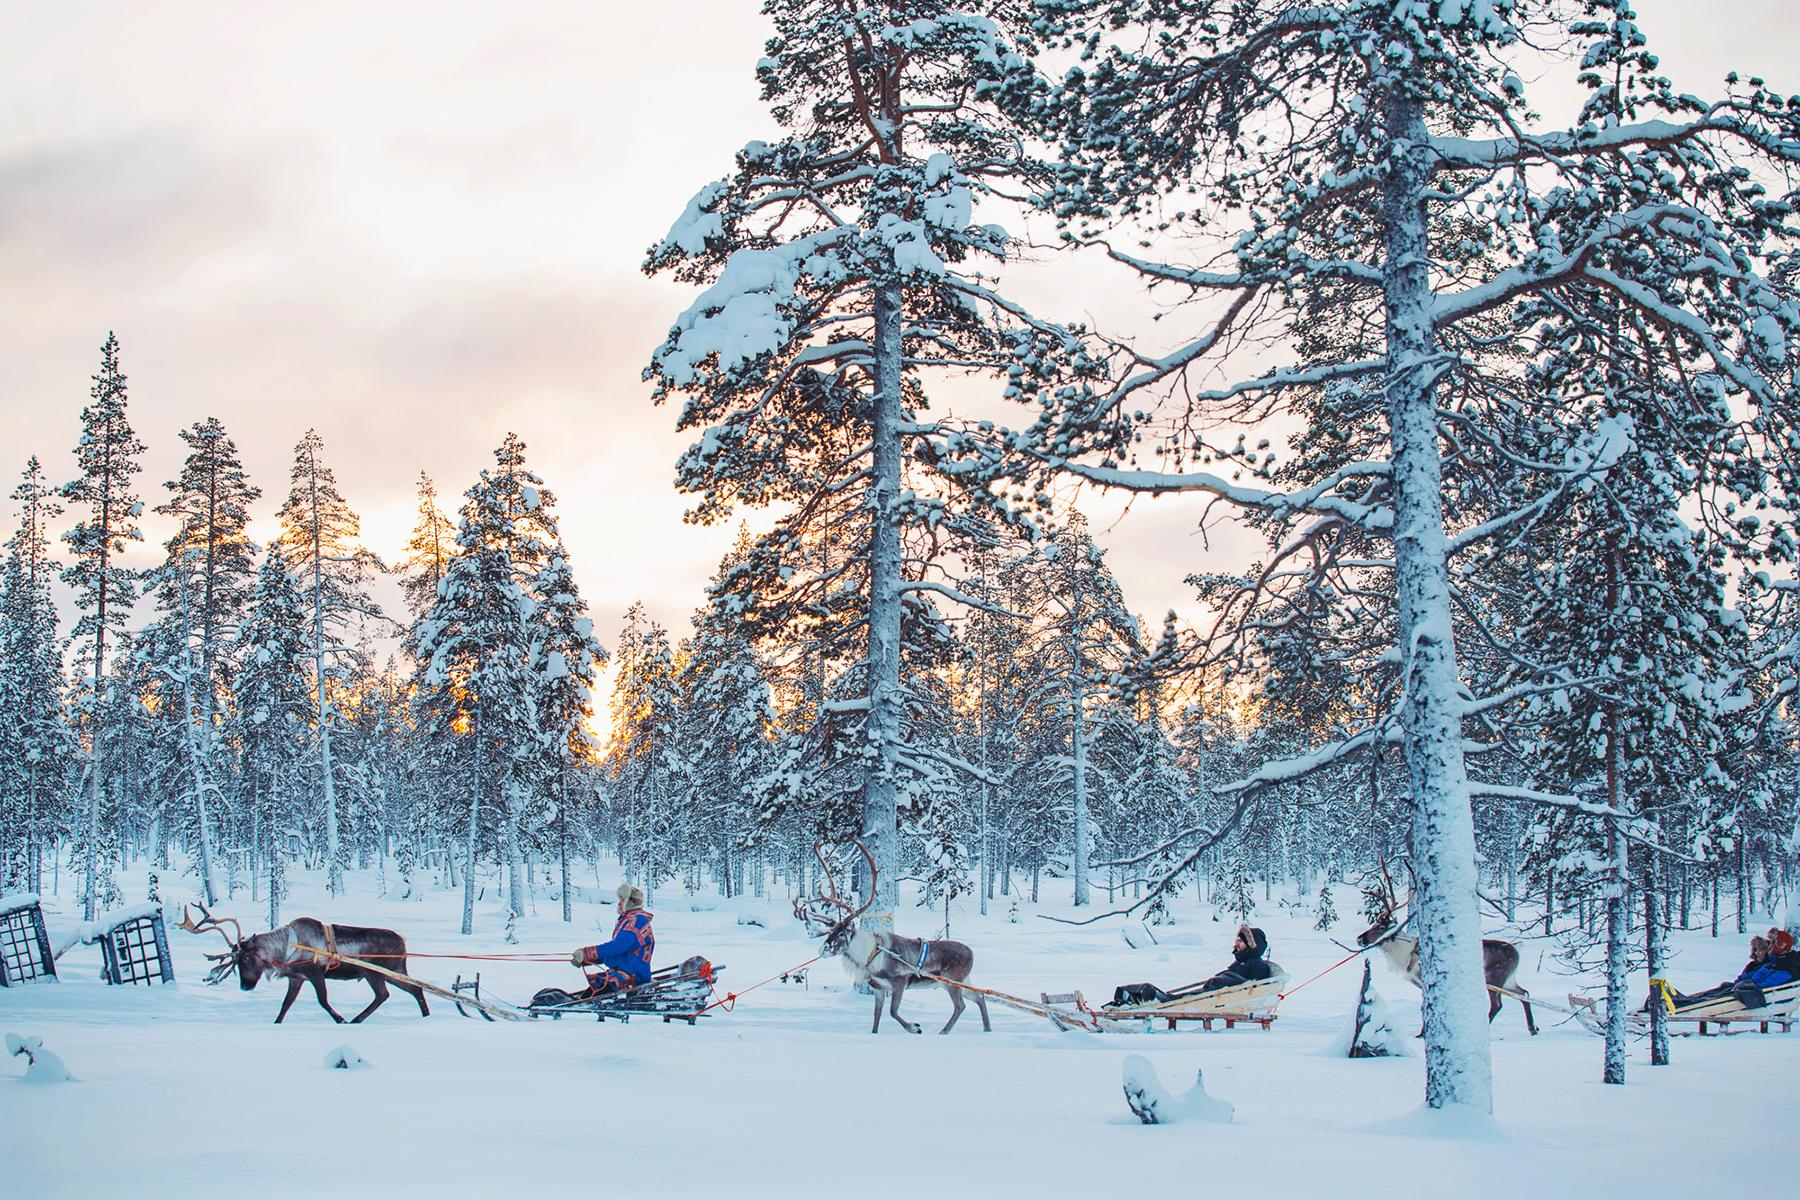 4.Unique-Hotel-Experiences-Ride-With-Reindeer-1